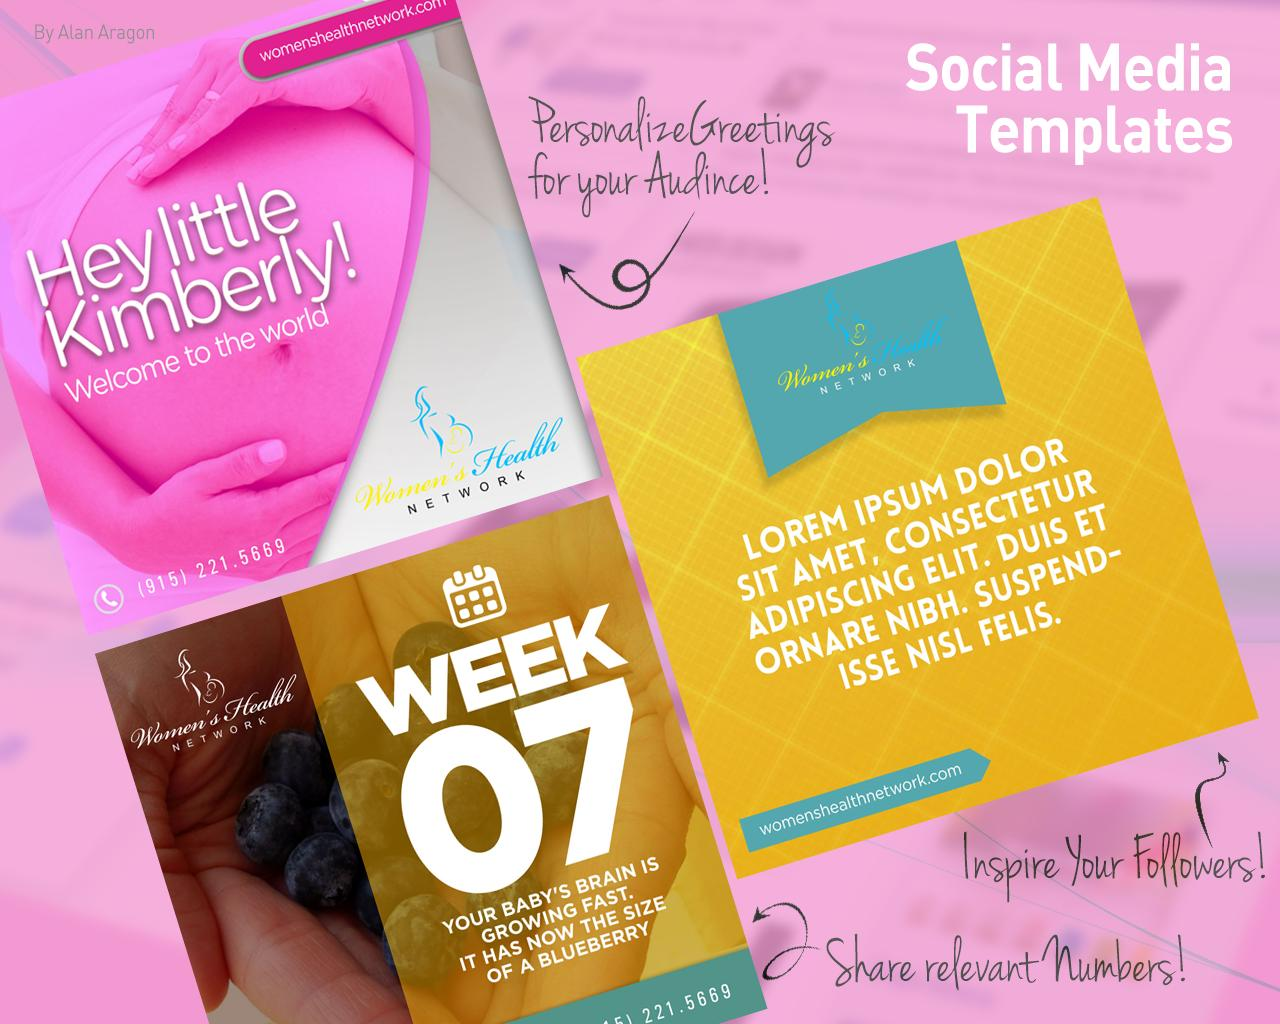 Psd social media templates by alanthedesigner on envato studio for Social media template psd